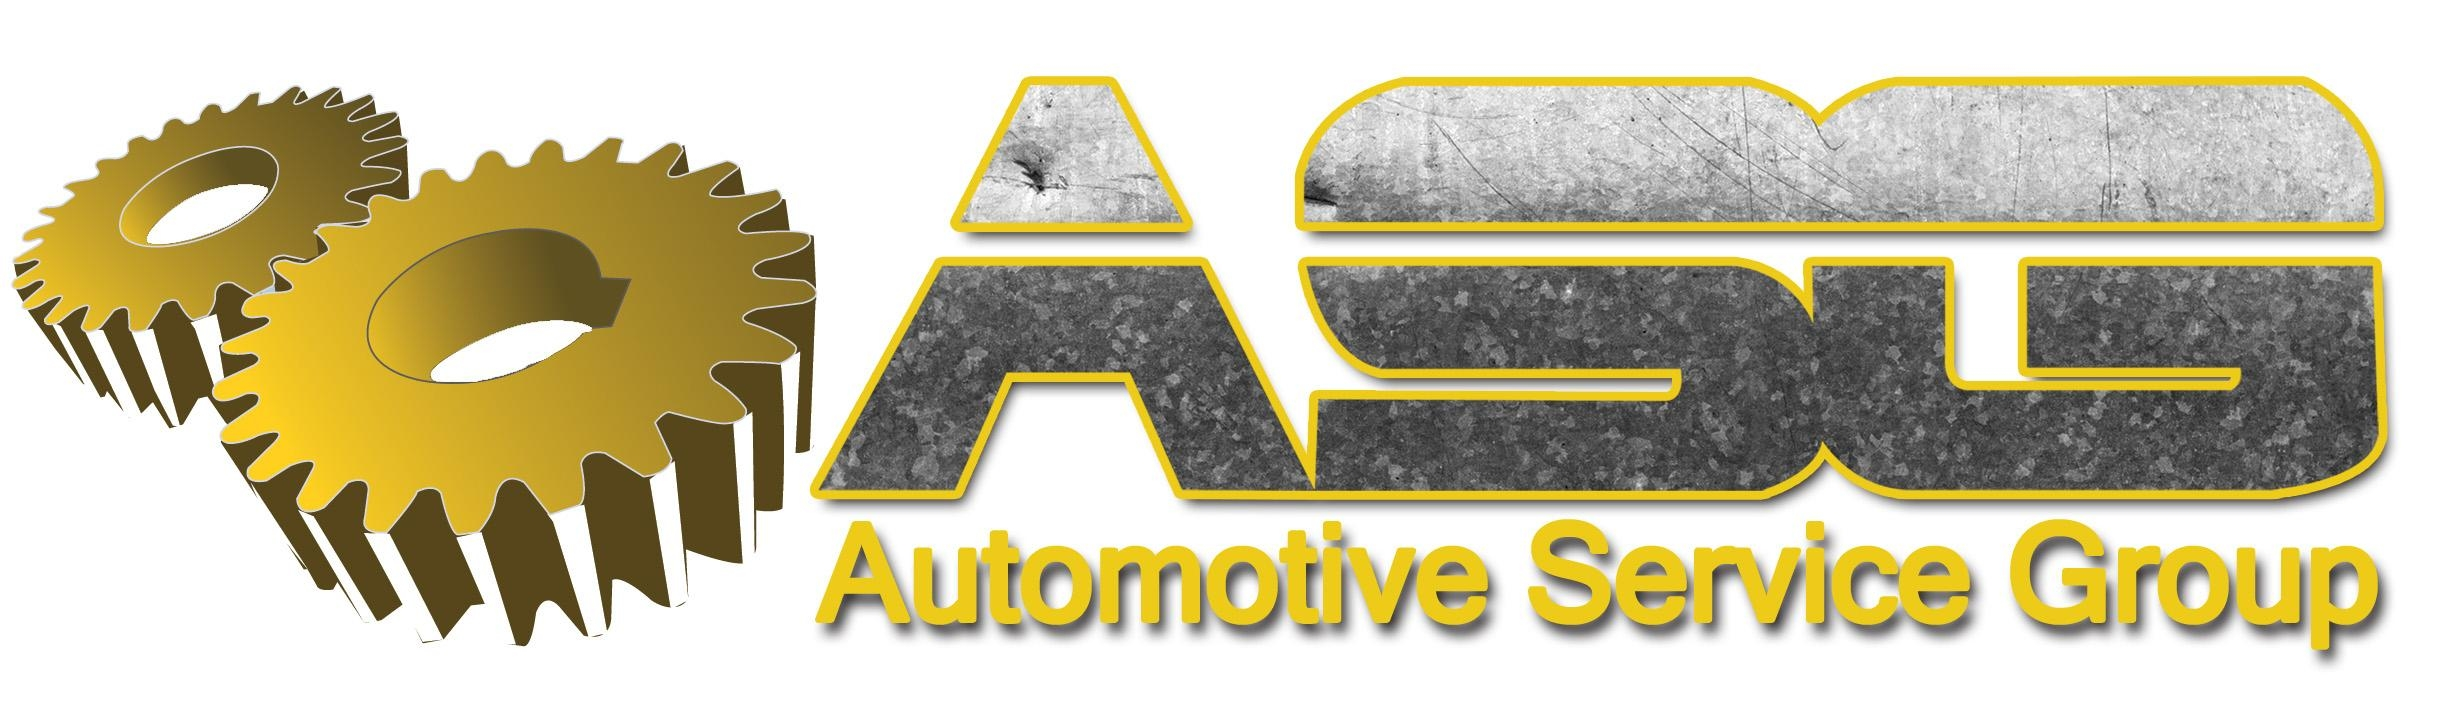 Auto Repair Shop in IN Indianapolis 46236 ASG Automotive 5841 Thunderbird Road Ste.3  (317)826-2906